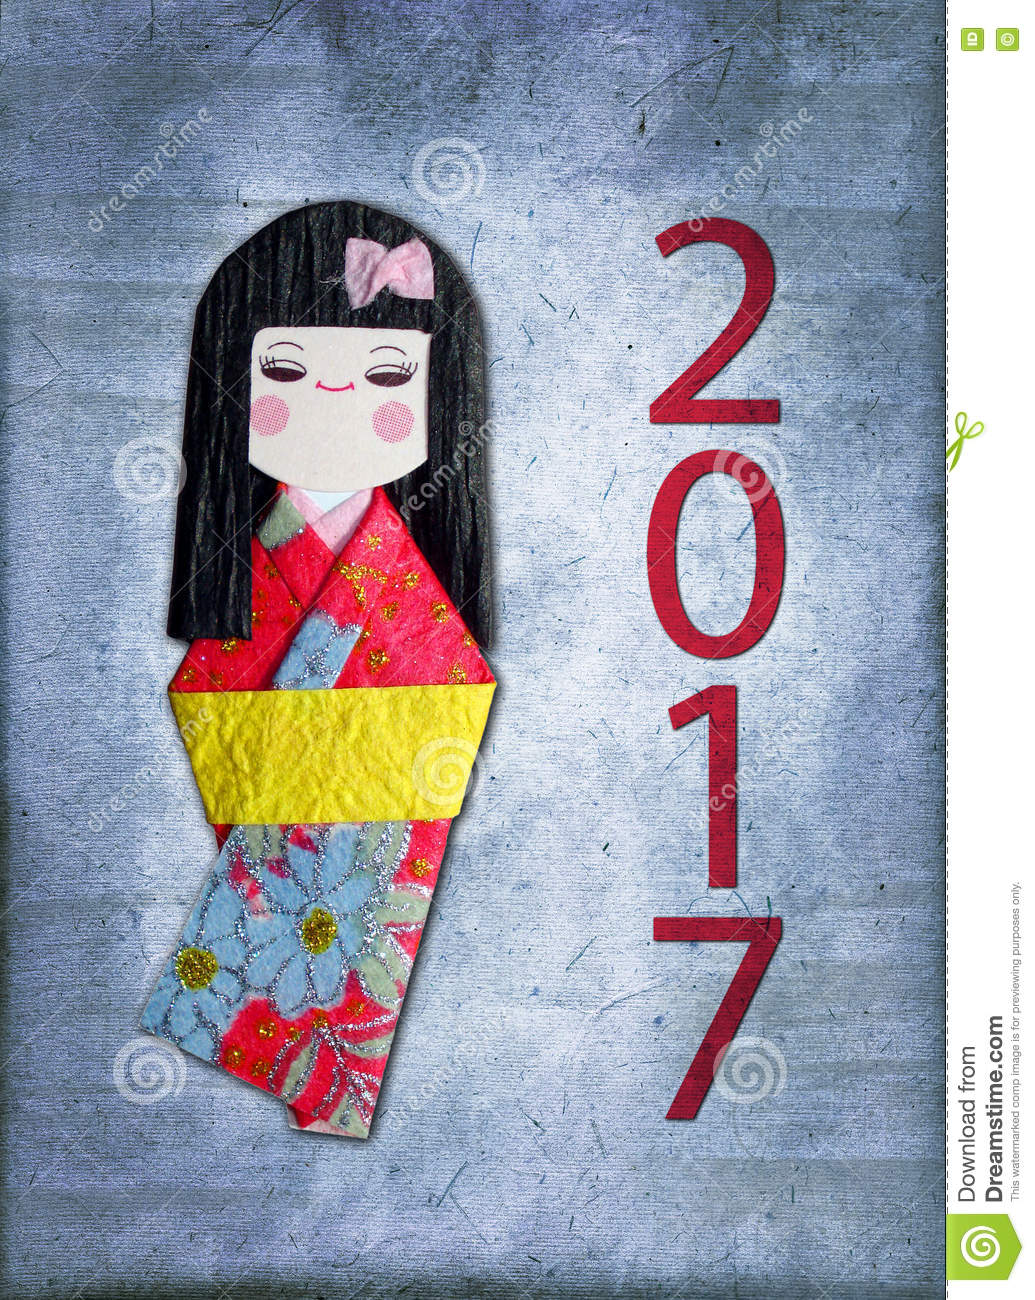 2017 Japanese Paper Doll Greeting Card Stock Photo Image Of